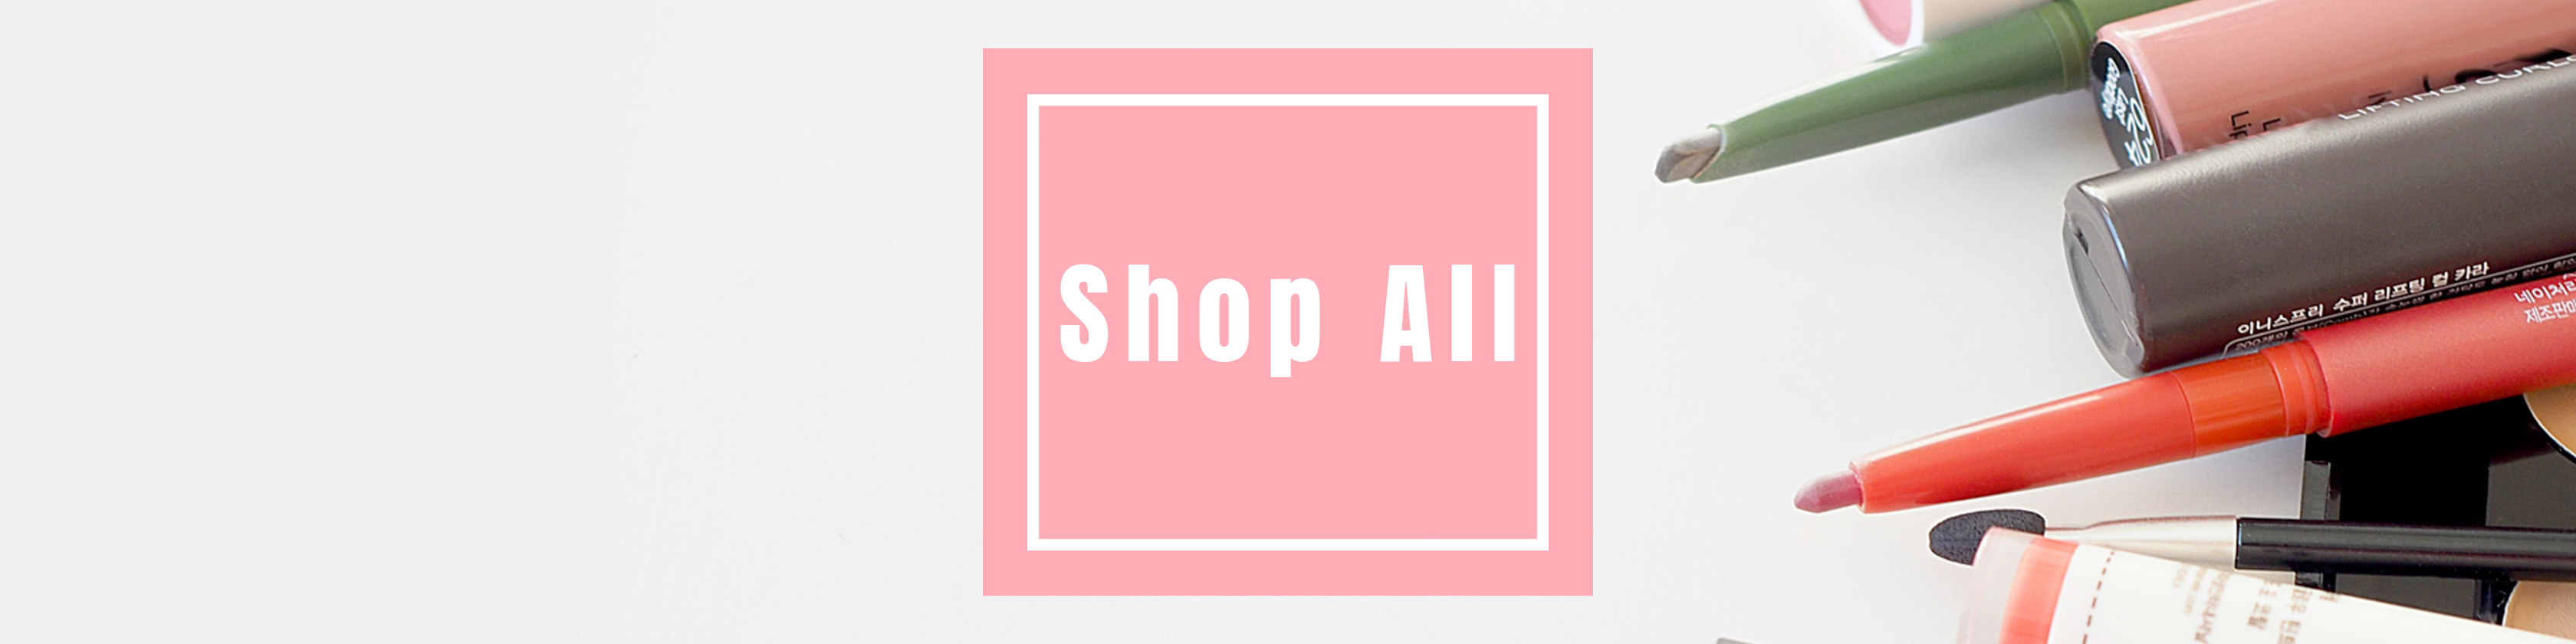 SHOP Boutique and cult cosmetics. Online makeup Sales! Glamabox Cosmetix ☆ Foundation. Powder. Eye Palettes & Sets. Mascara. False Eyelashes. Brow Pomade. Matte liquid lips. Find all the Cosmetics you need online right here and shop now, pay later with Afterpay | Humm | Laybuy. Free Shipping*